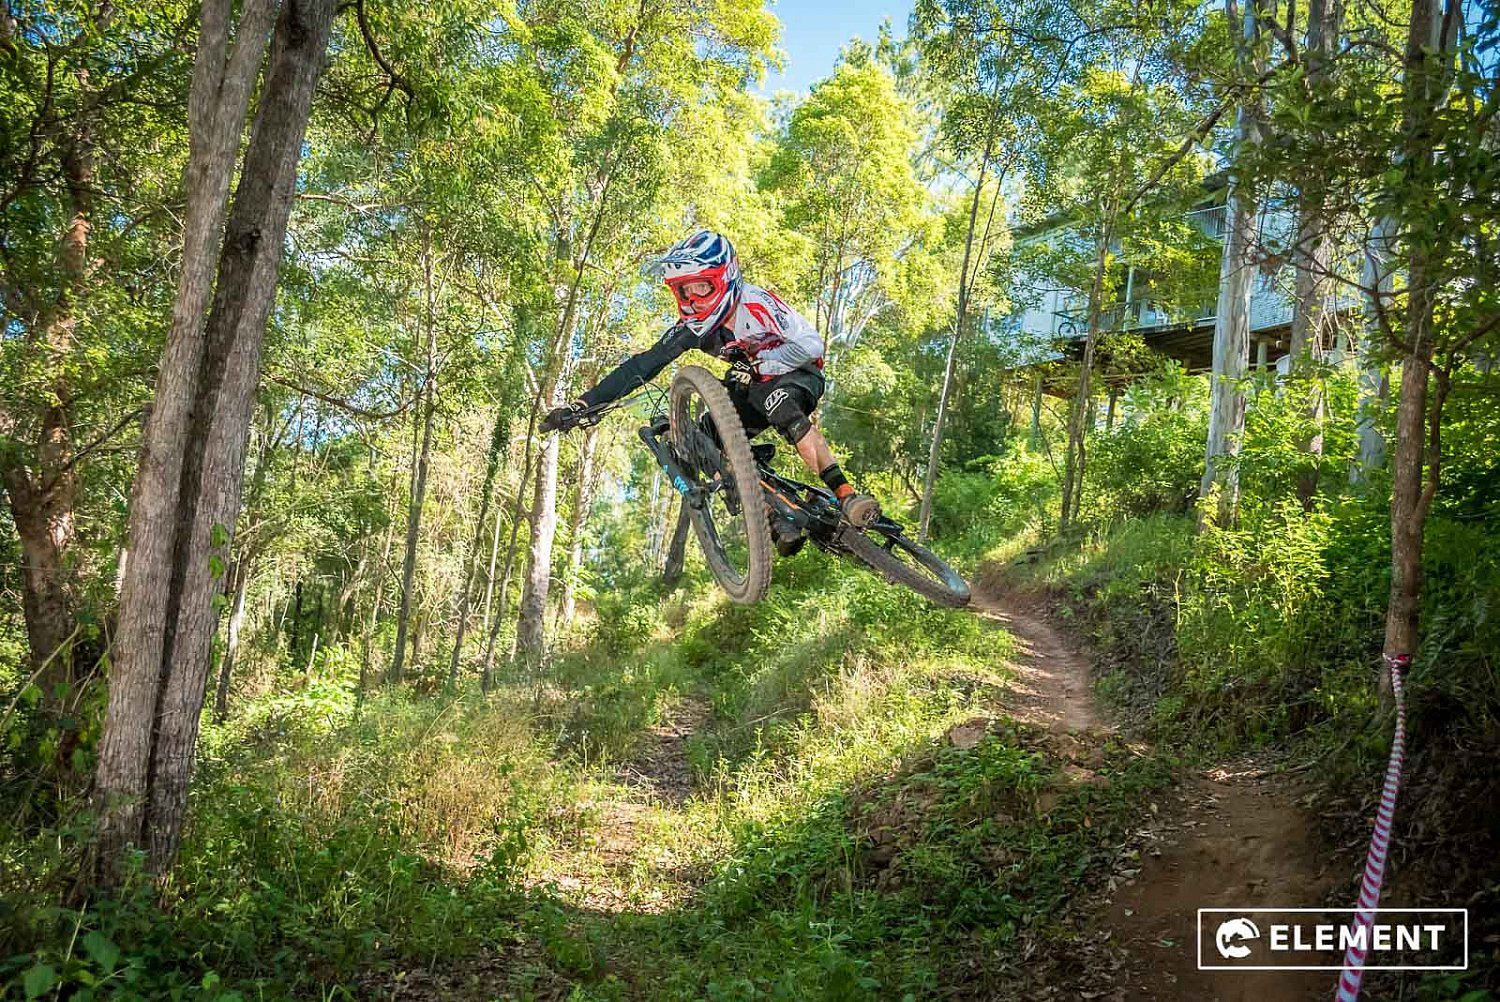 MTB Ride and Shoot Photography Workshop (1st March 2020) | SLV_8520_Scott_Veitch_29-04-2018.jpg